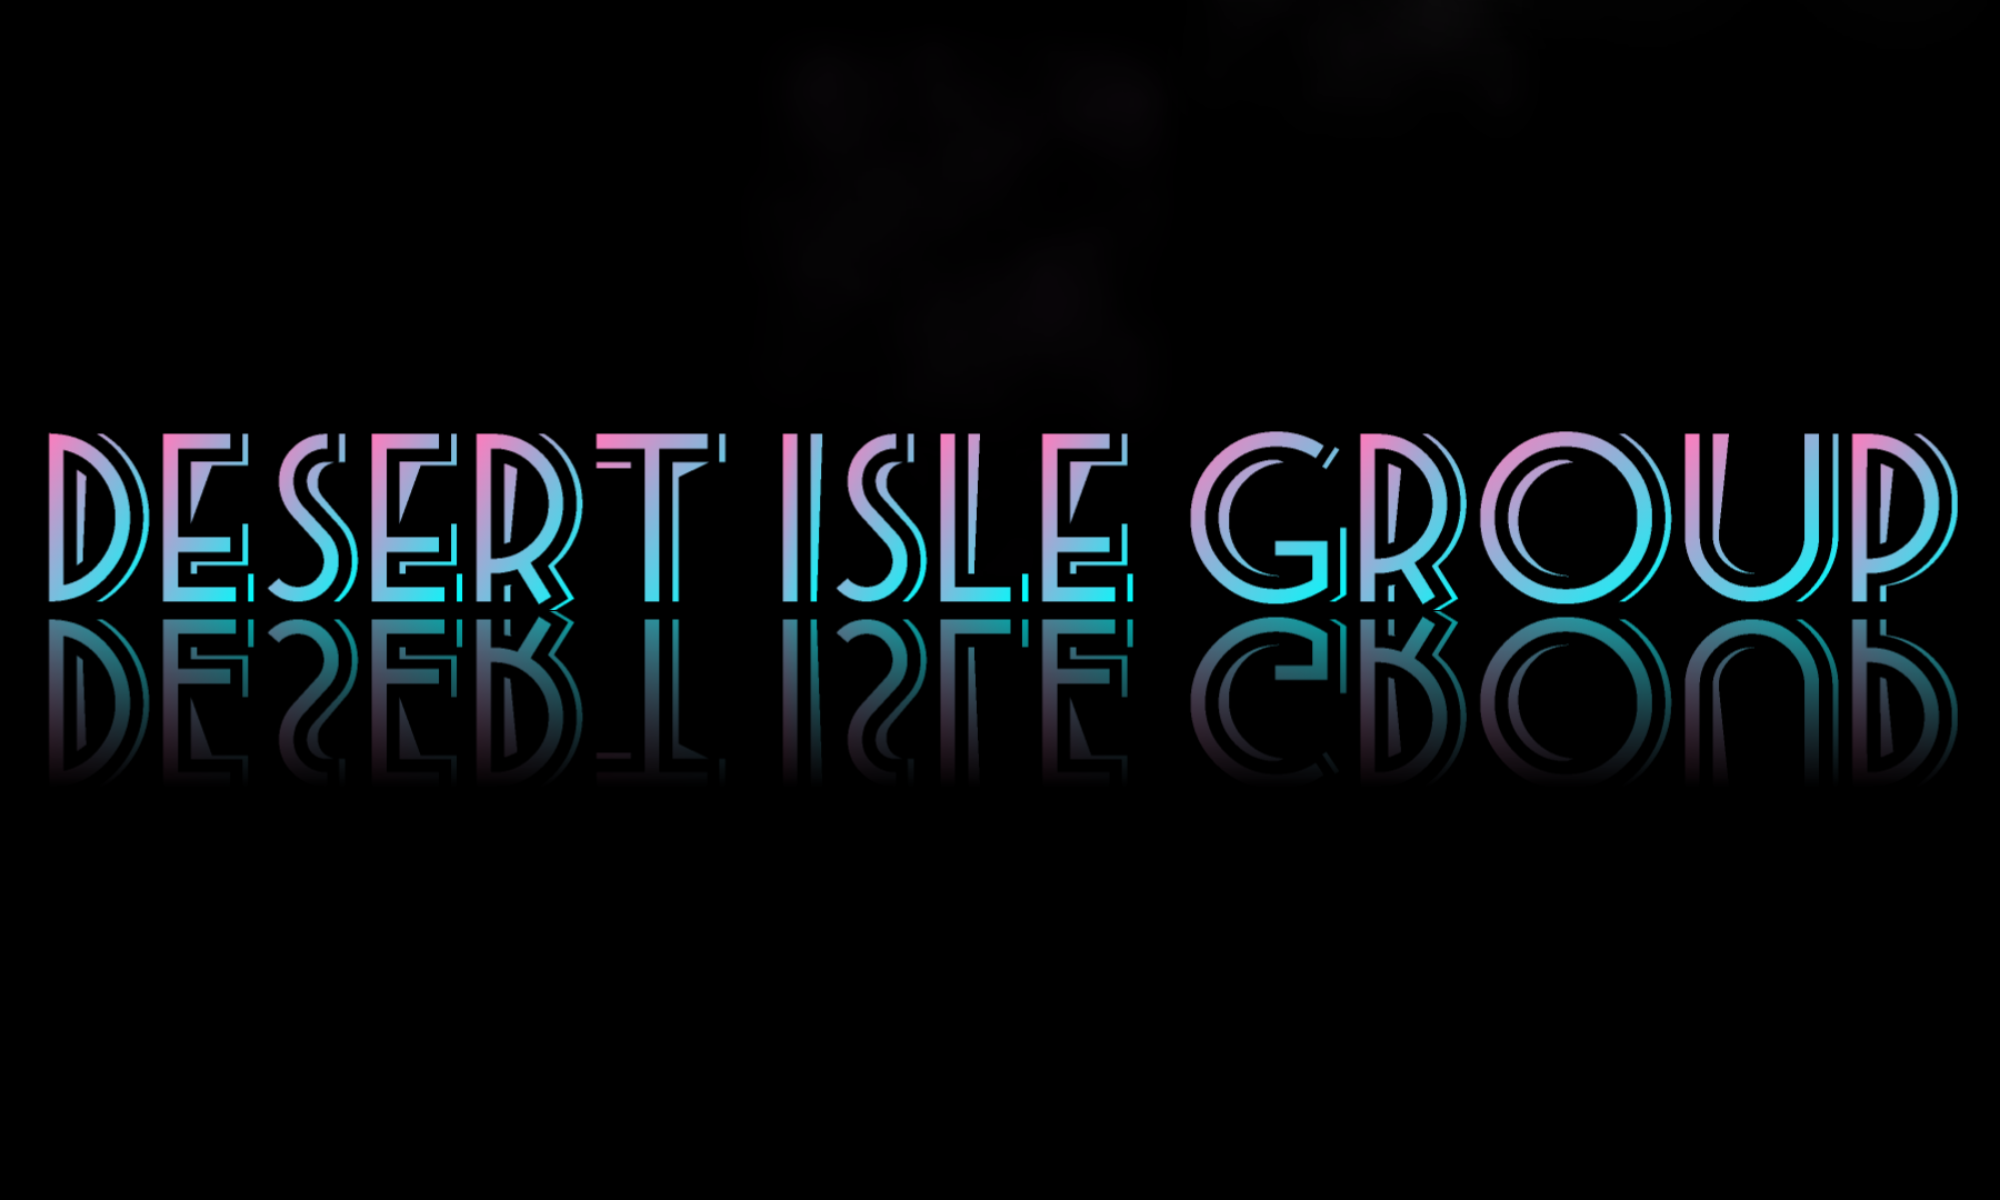 Desert Isle Group